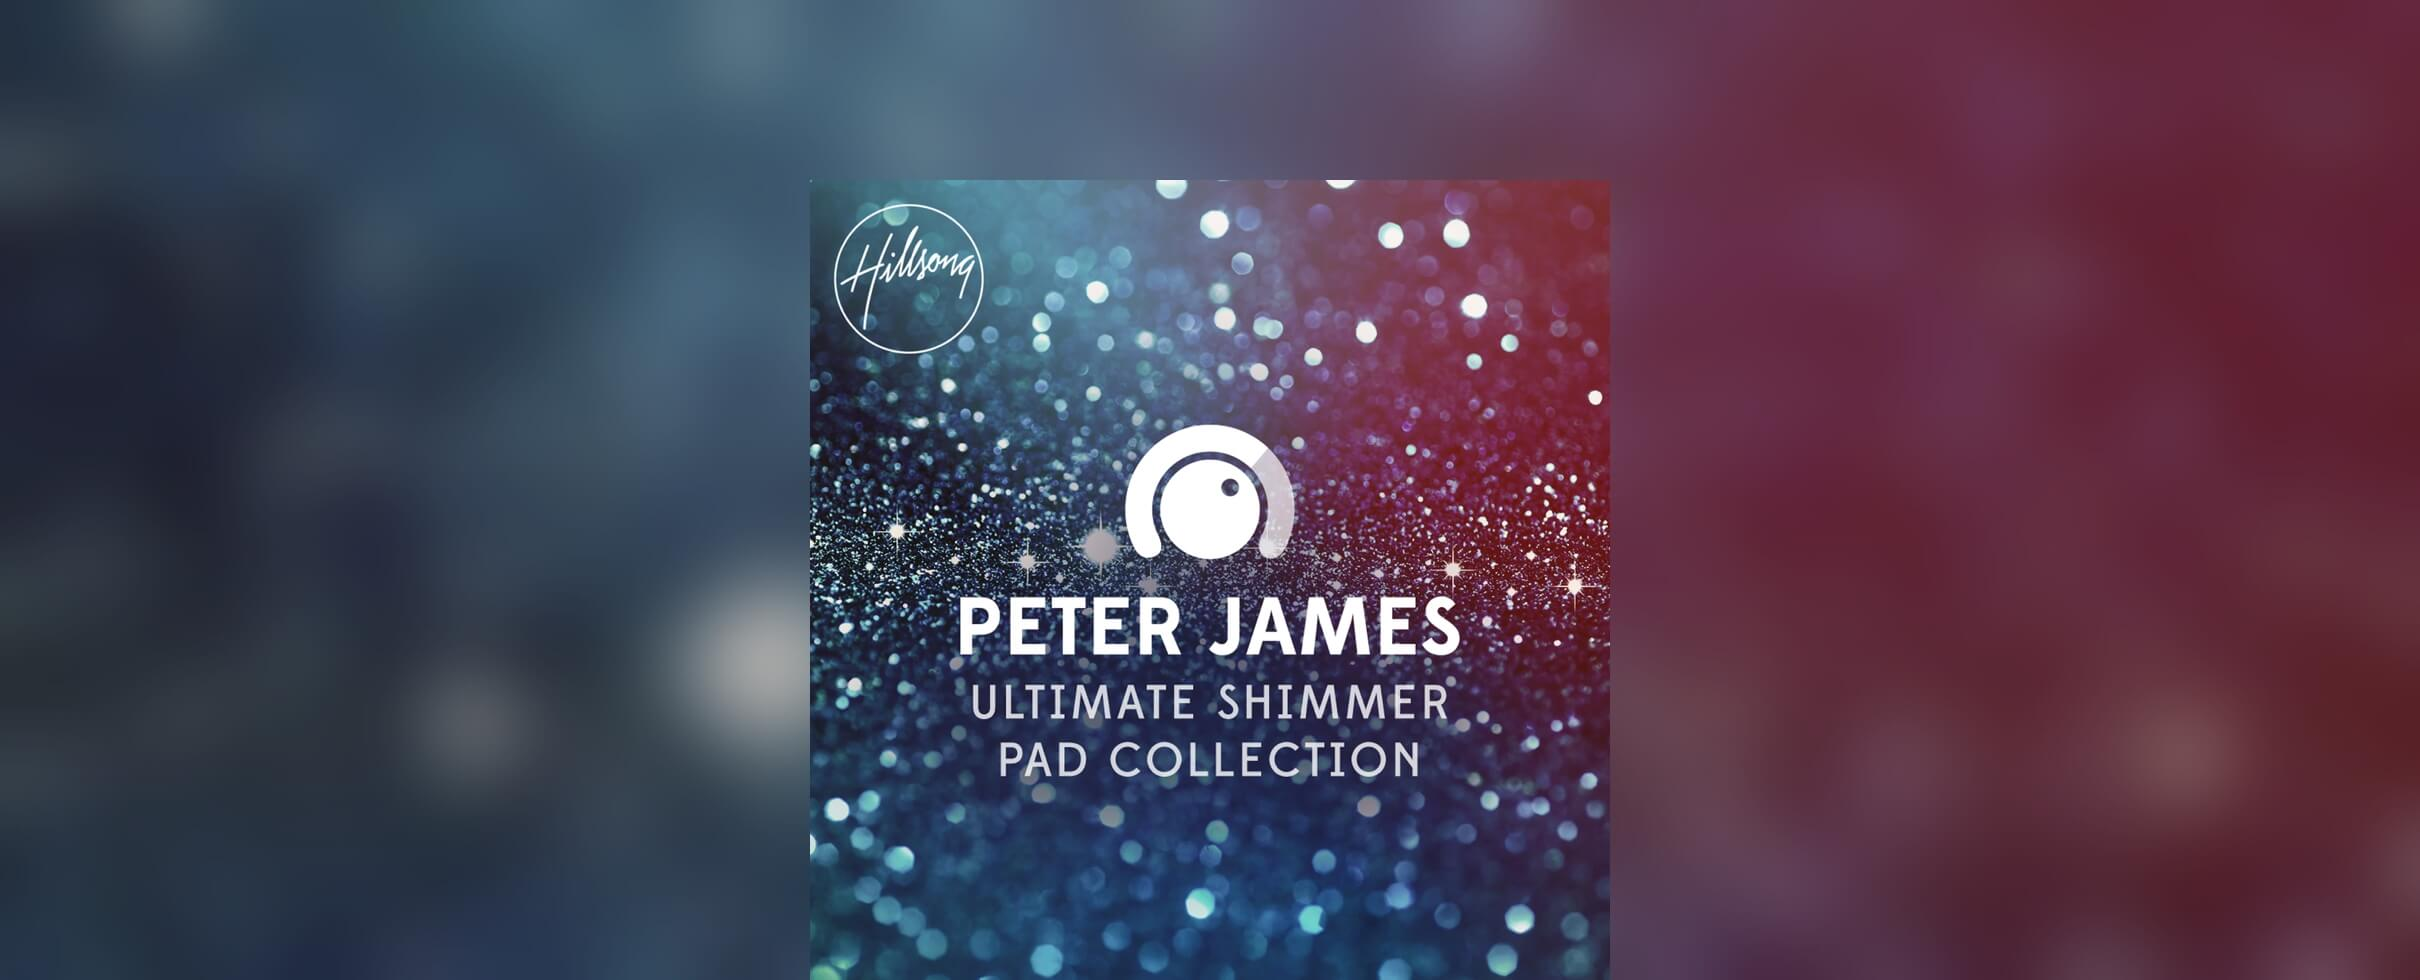 <h1>Ultimate Shimmer Pad</h1> <strong>Peter James</strong>